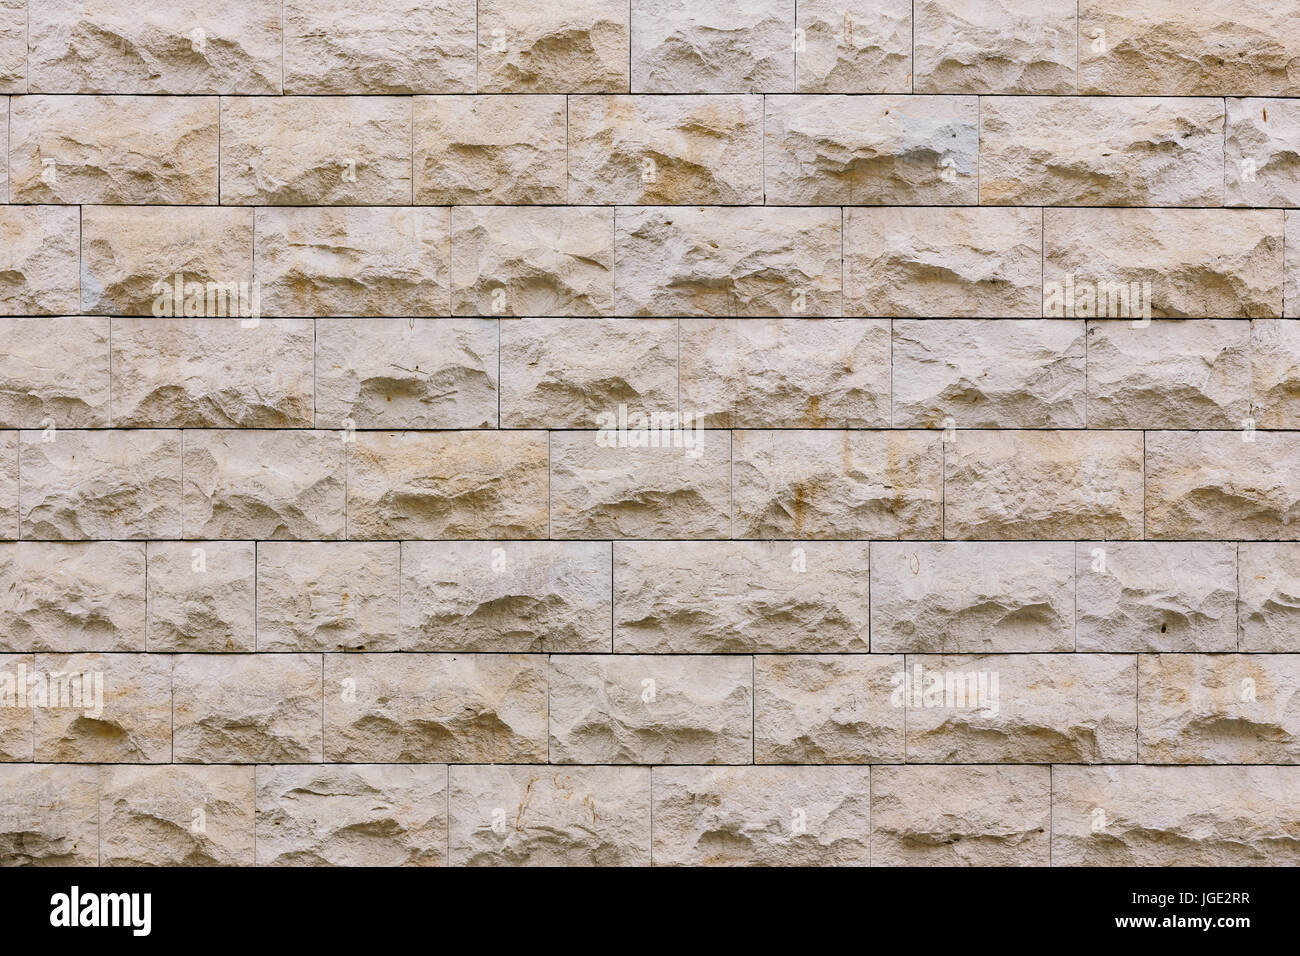 Texture of stone wall - Stock Image